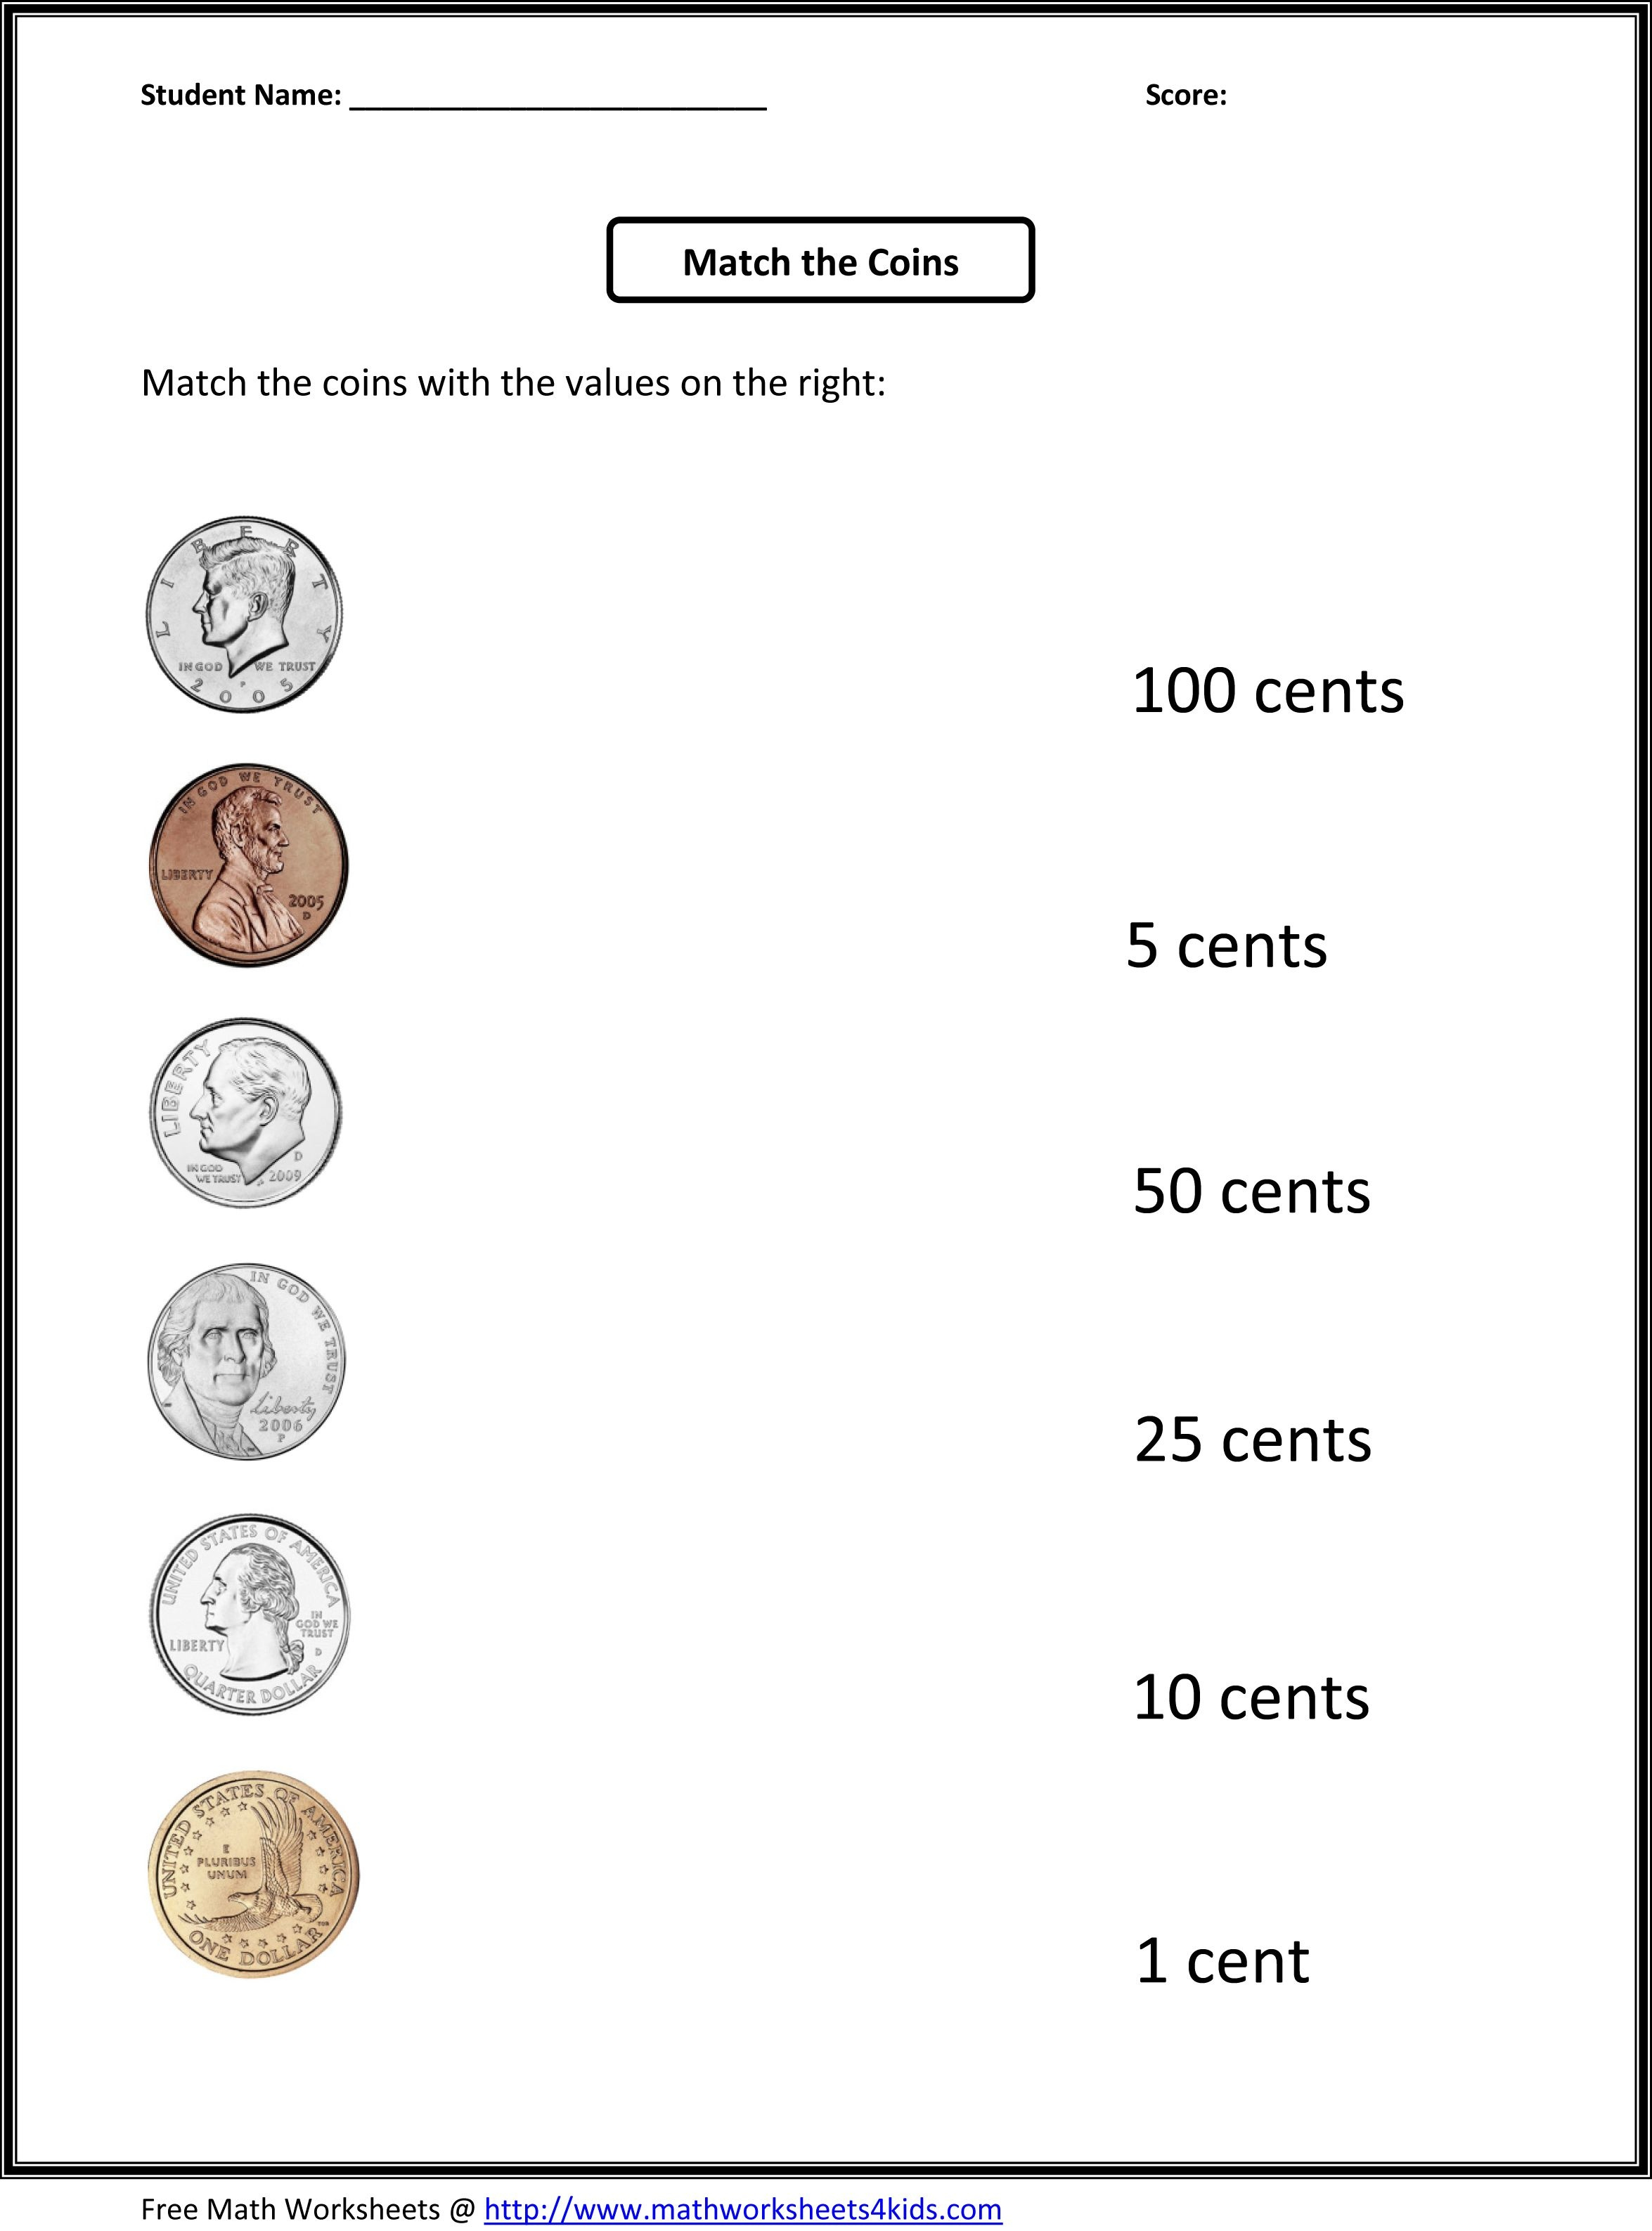 Free 1St Grade Worksheets   Match The Coins And Its Values - Free Printable Money Worksheets For Kindergarten